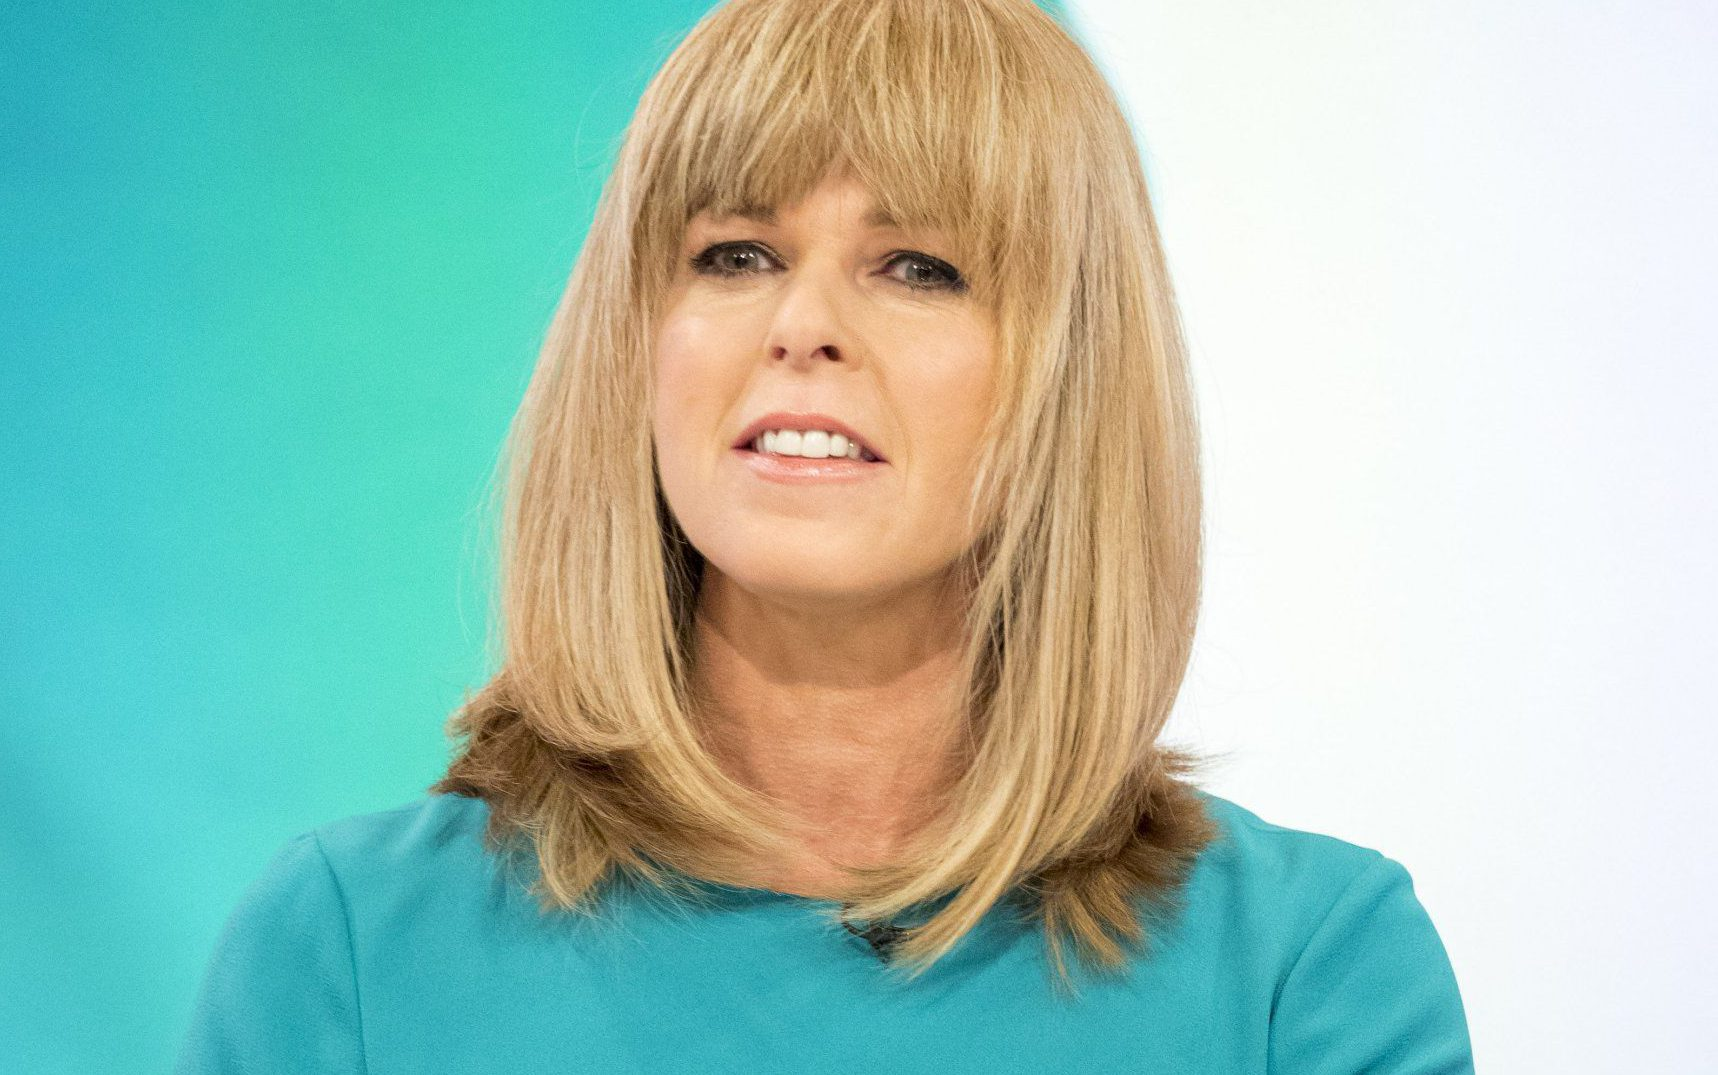 EDITORIAL USE ONLY. NO MERCHANDISING Mandatory Credit: Photo by Ken McKay/ITV/REX/Shutterstock (8470374bw) Kate Garraway 'Loose Women' TV show, London, UK - 06 Mar 2017